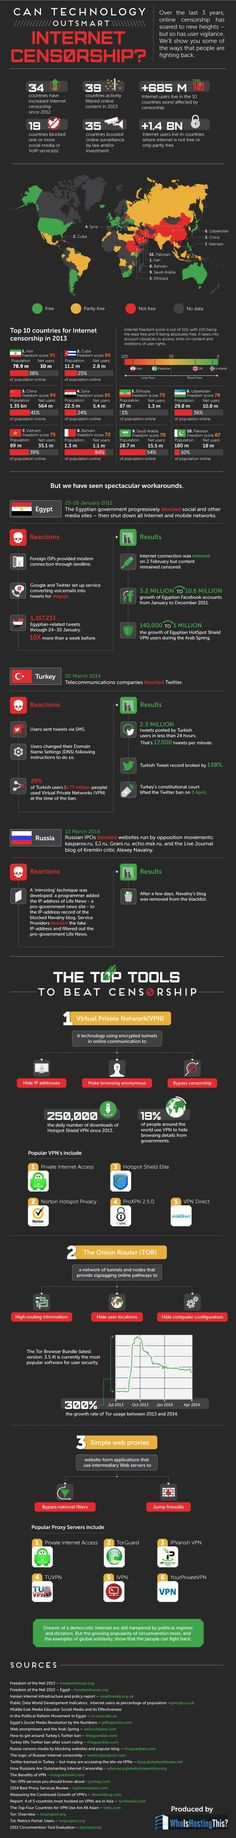 Can Technology Outsmart Internet Censorship? #infographic #Internet #Technology